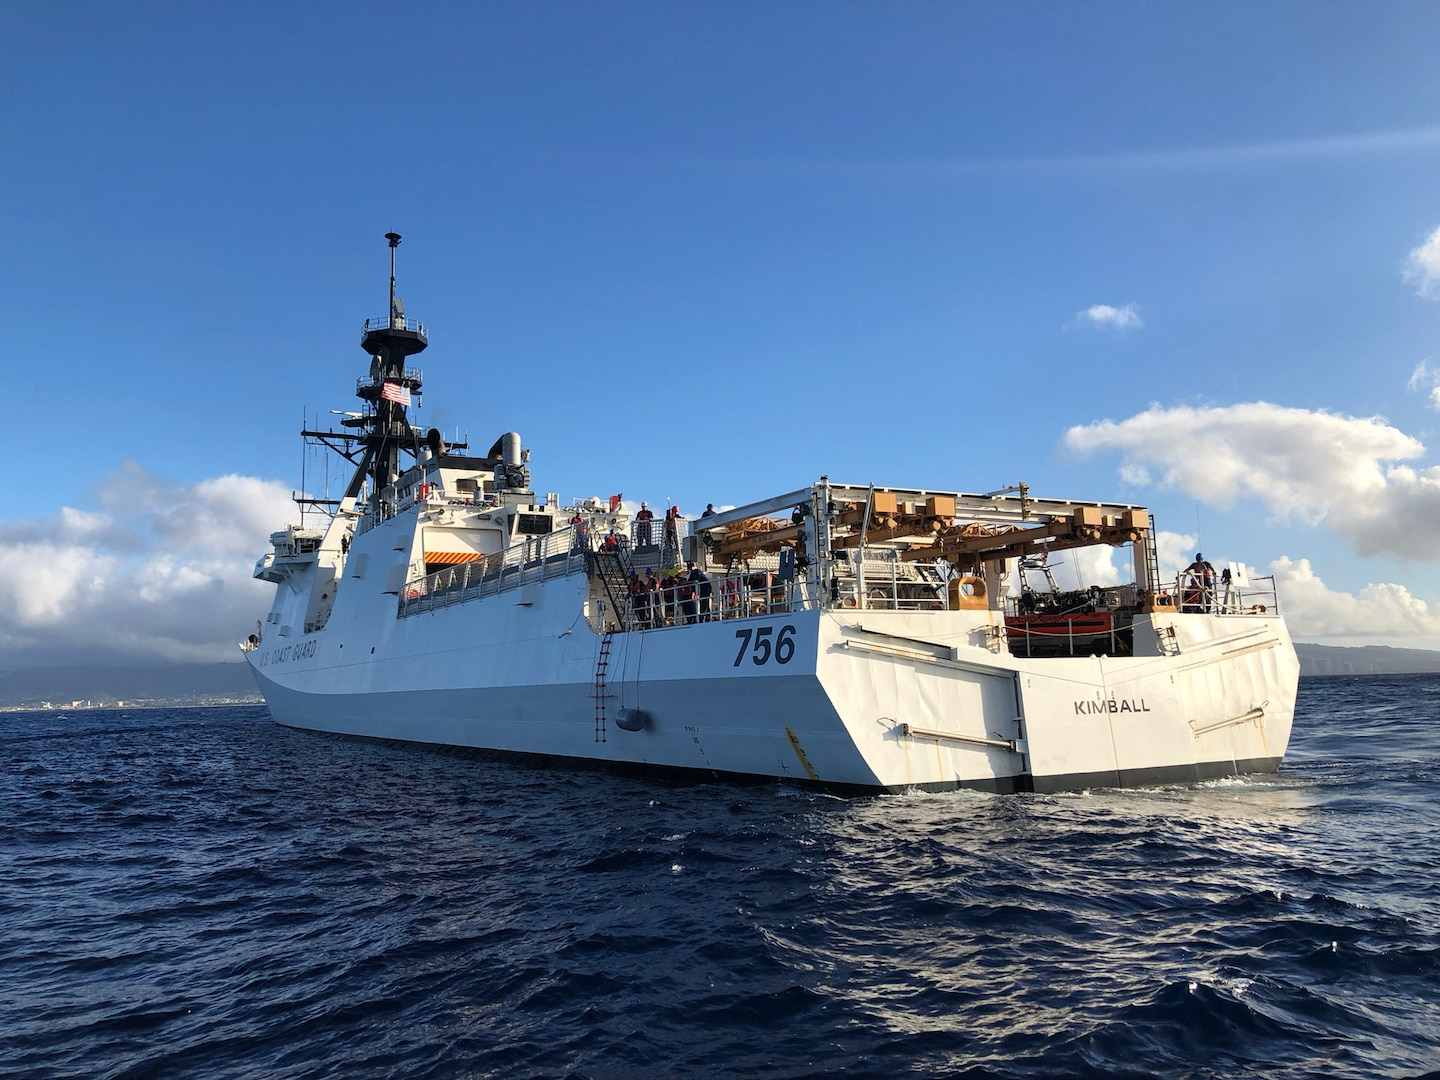 Coast Guard Cutter Kimball joins search for missing mariner off Guam